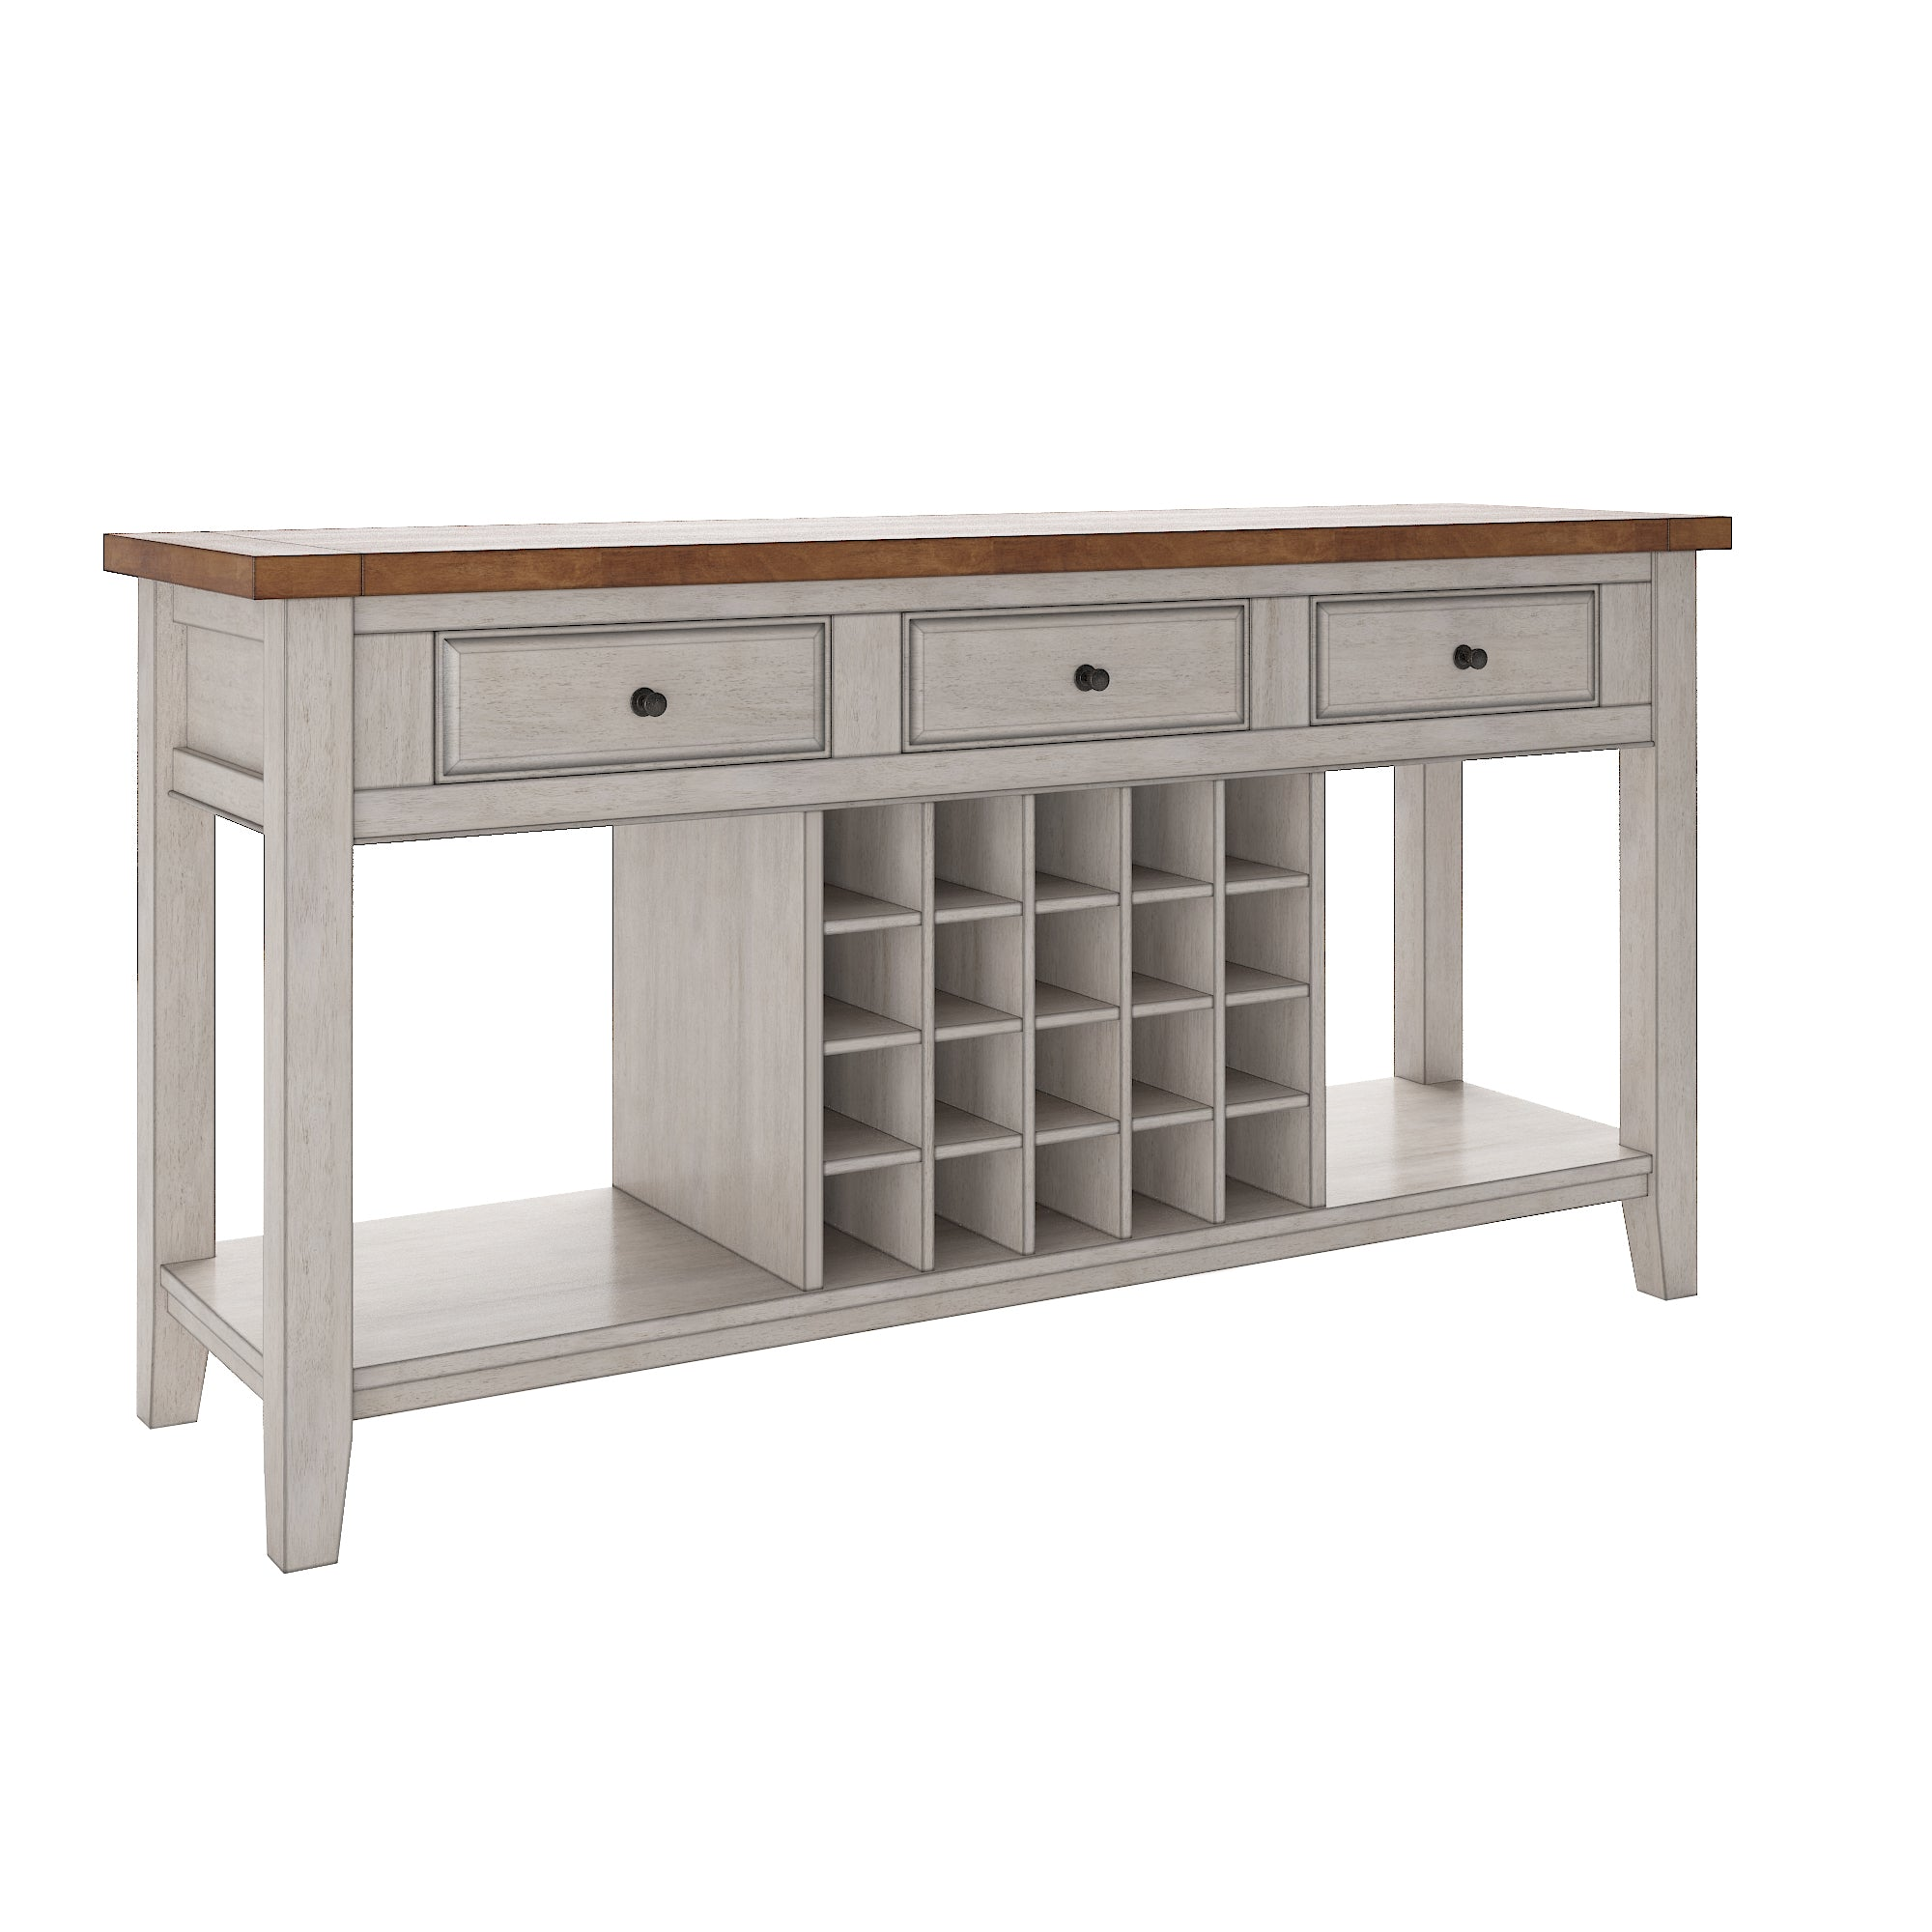 Two-Tone Wood Wine Rack Buffet Server - Oak Top with Antique White Finish Base